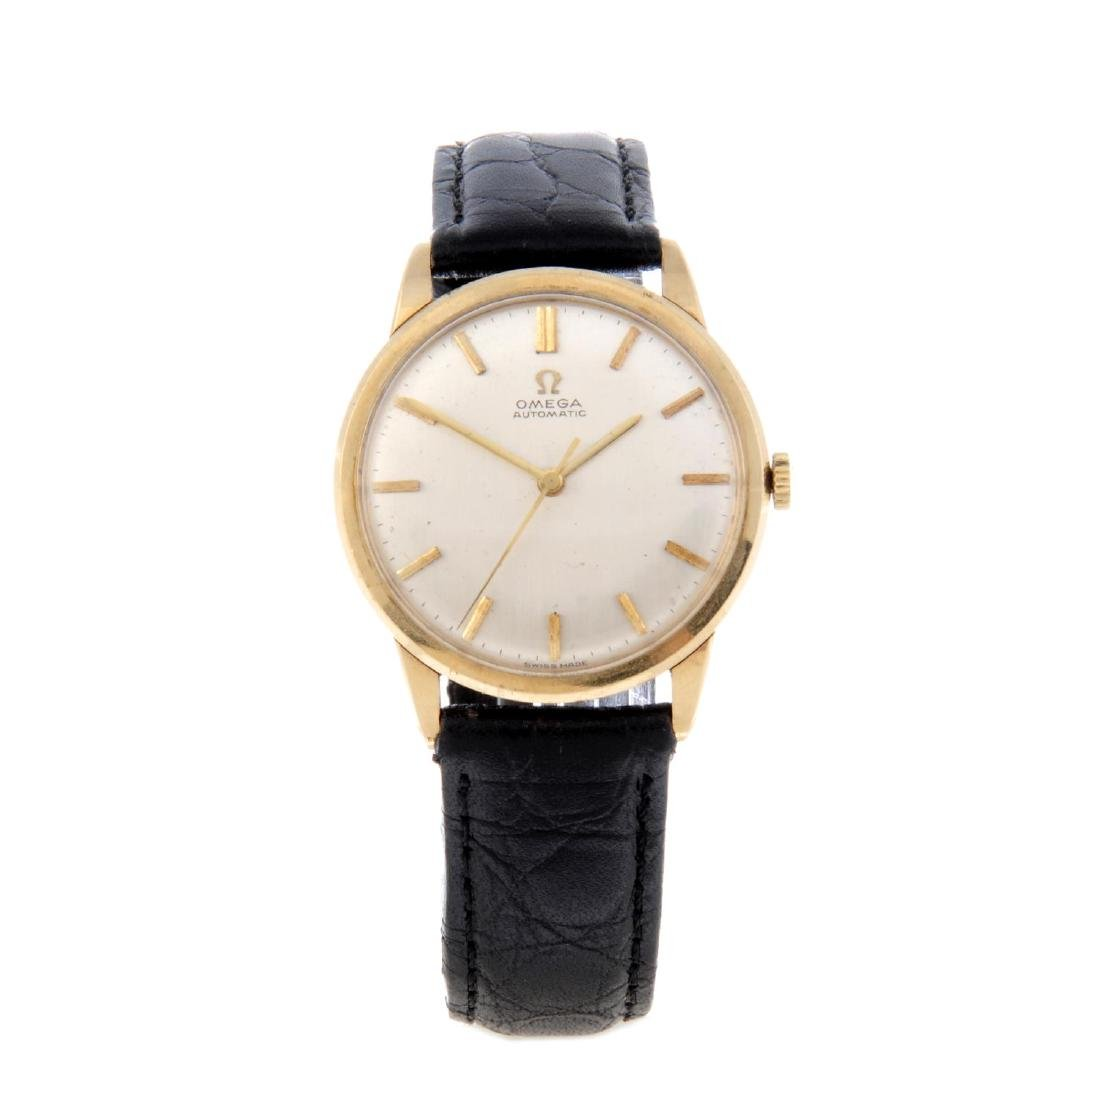 OMEGA - a gentleman's wrist watch. 9ct yellow gold